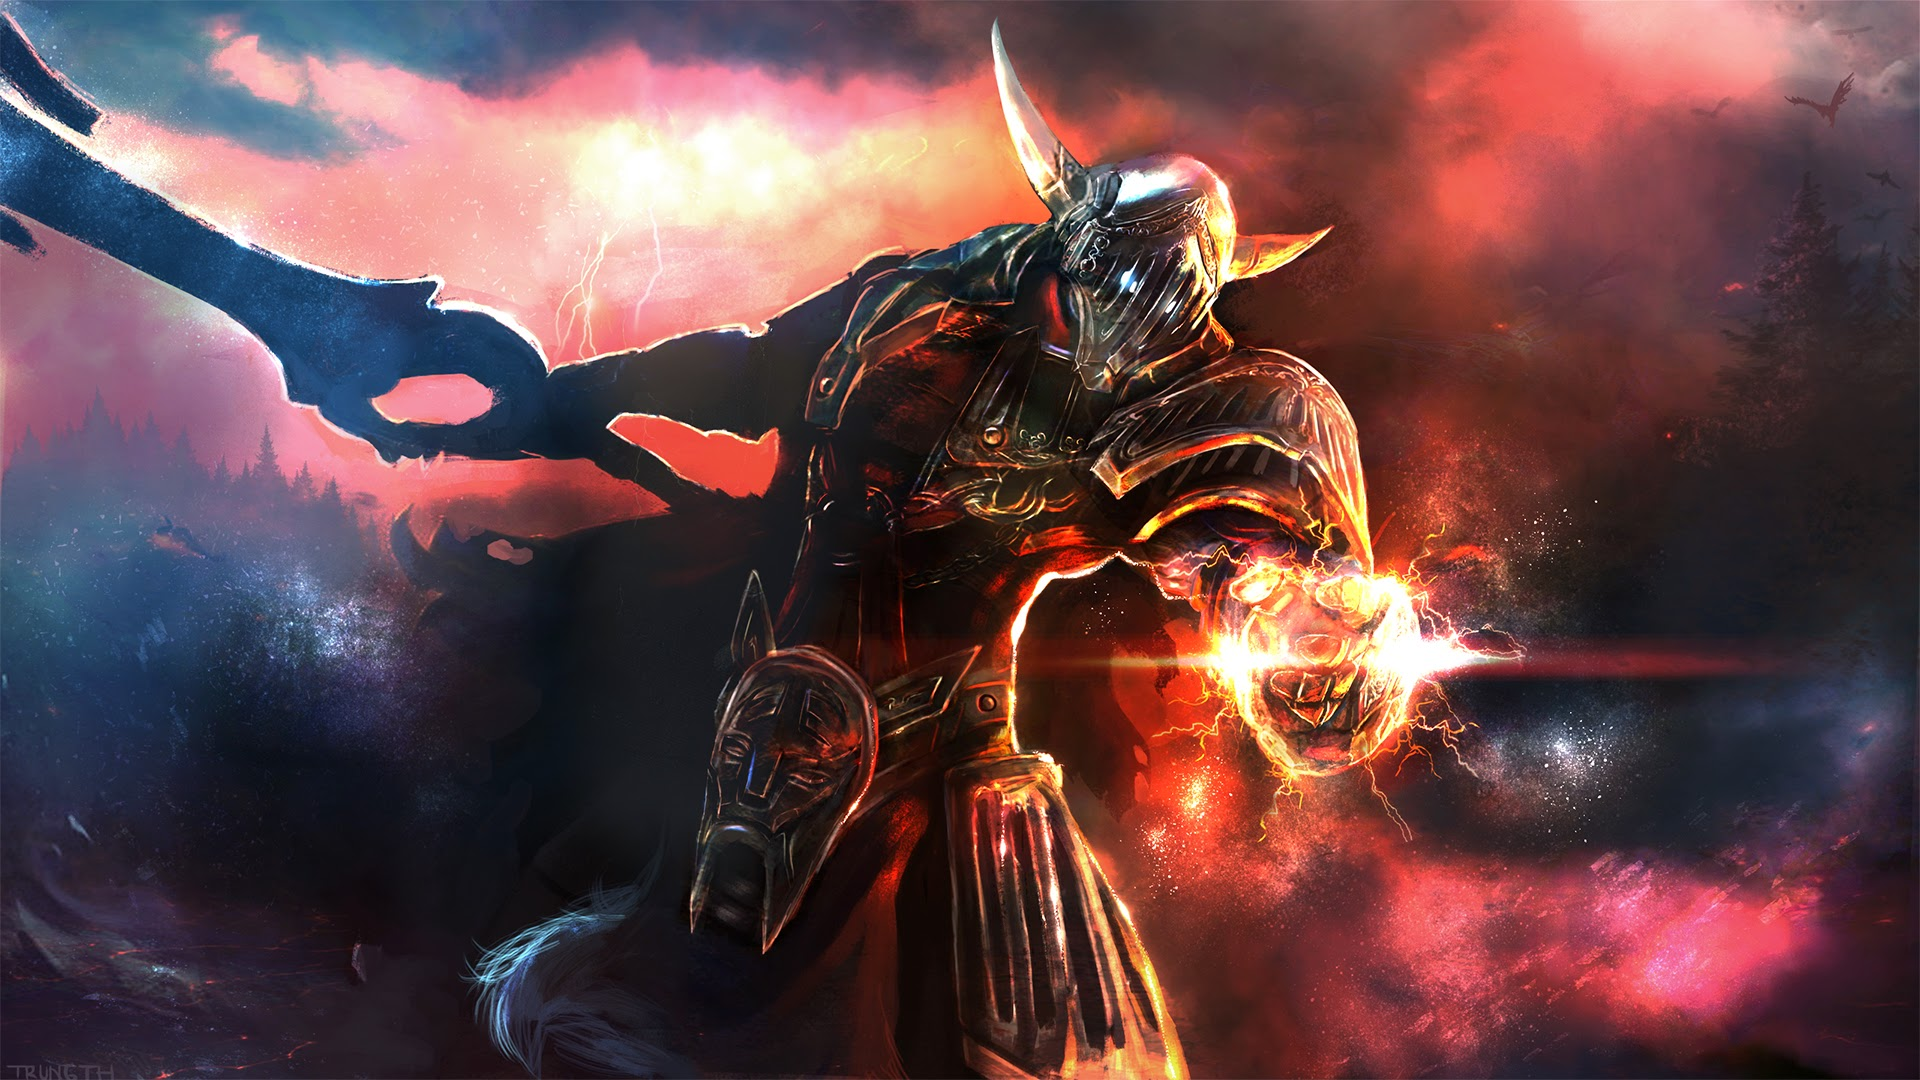 1920x1080px Dota 2 HD Wallpaper 1920x1080 - WallpaperSafari